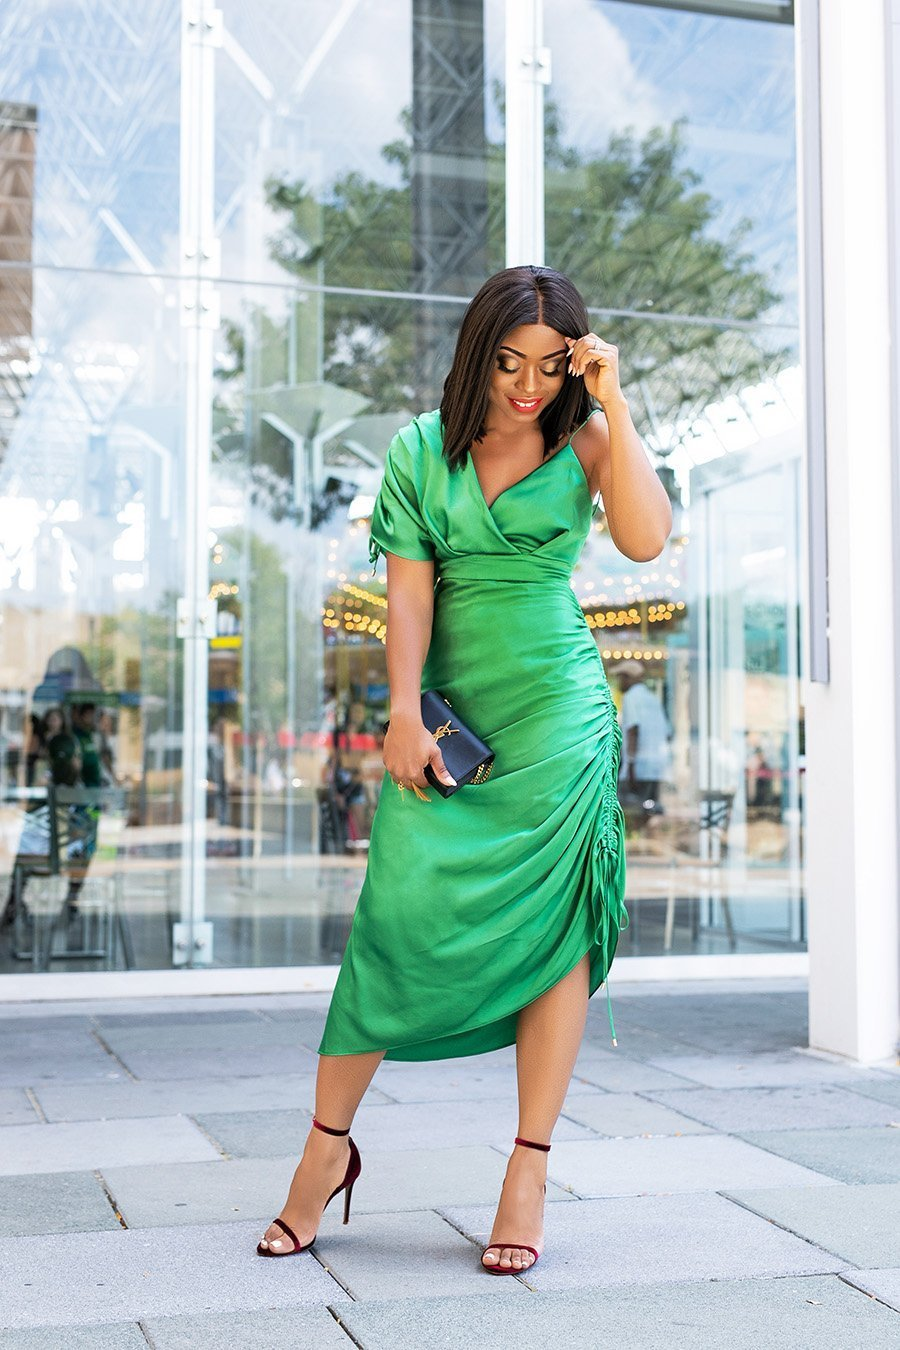 fashion-blogger-Stella-Adewunmi-of-Jadore-Fashion-shares-favorite-holiday-party-style-dresses